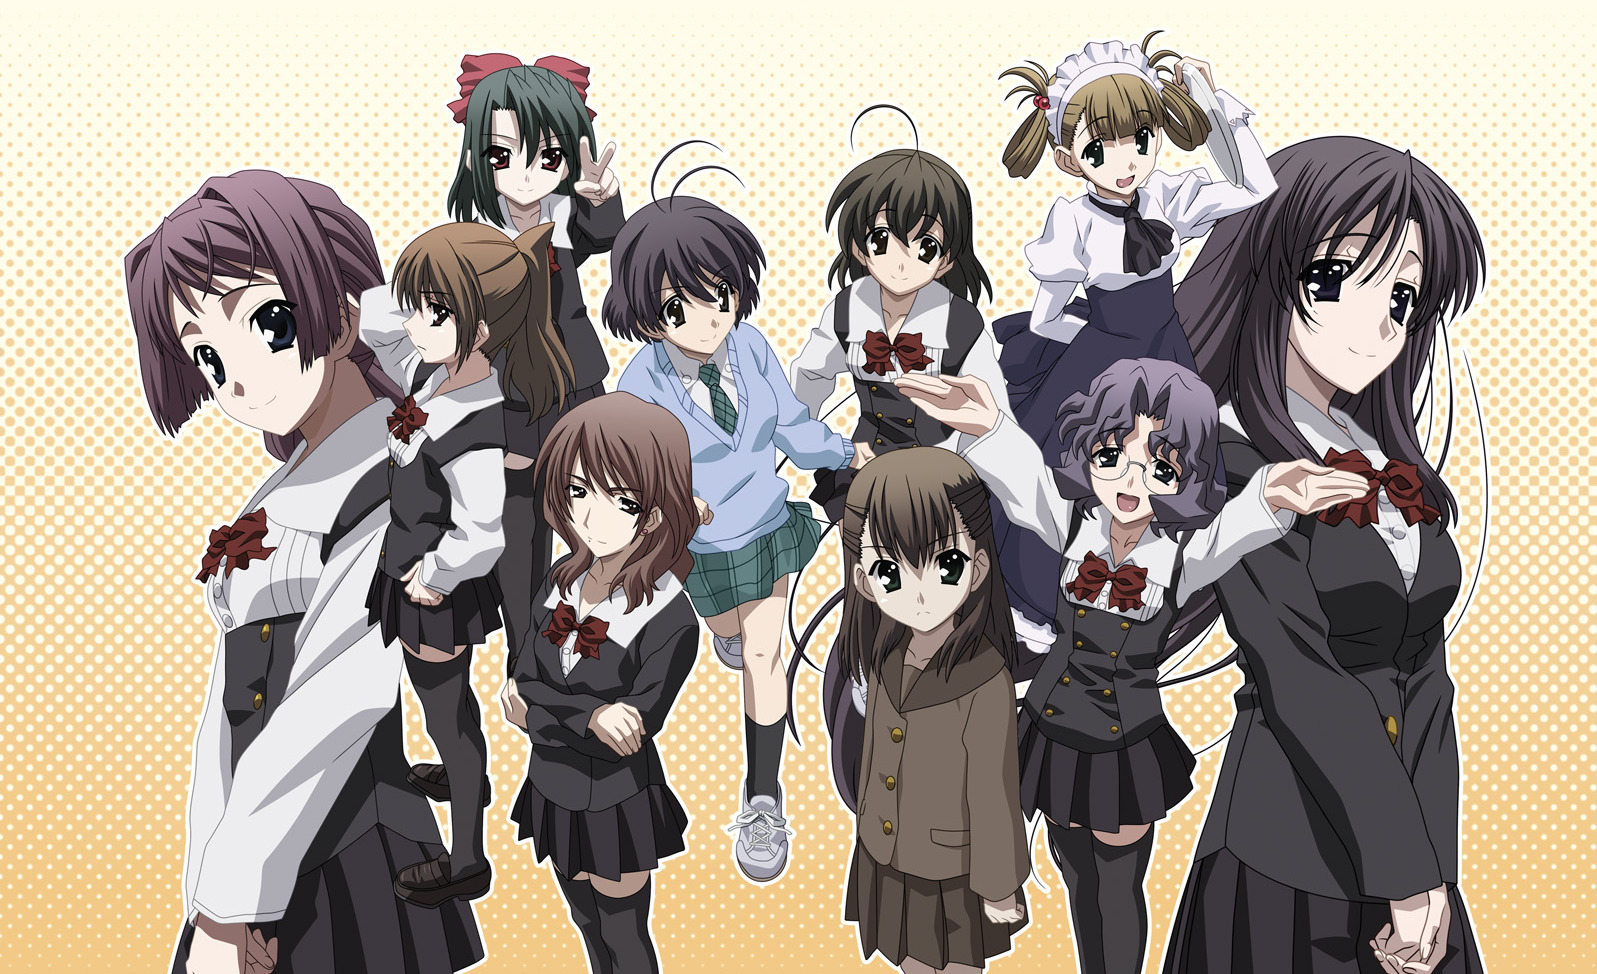 Ten feminine figures in school uniforms stand together, some angry and some excited.